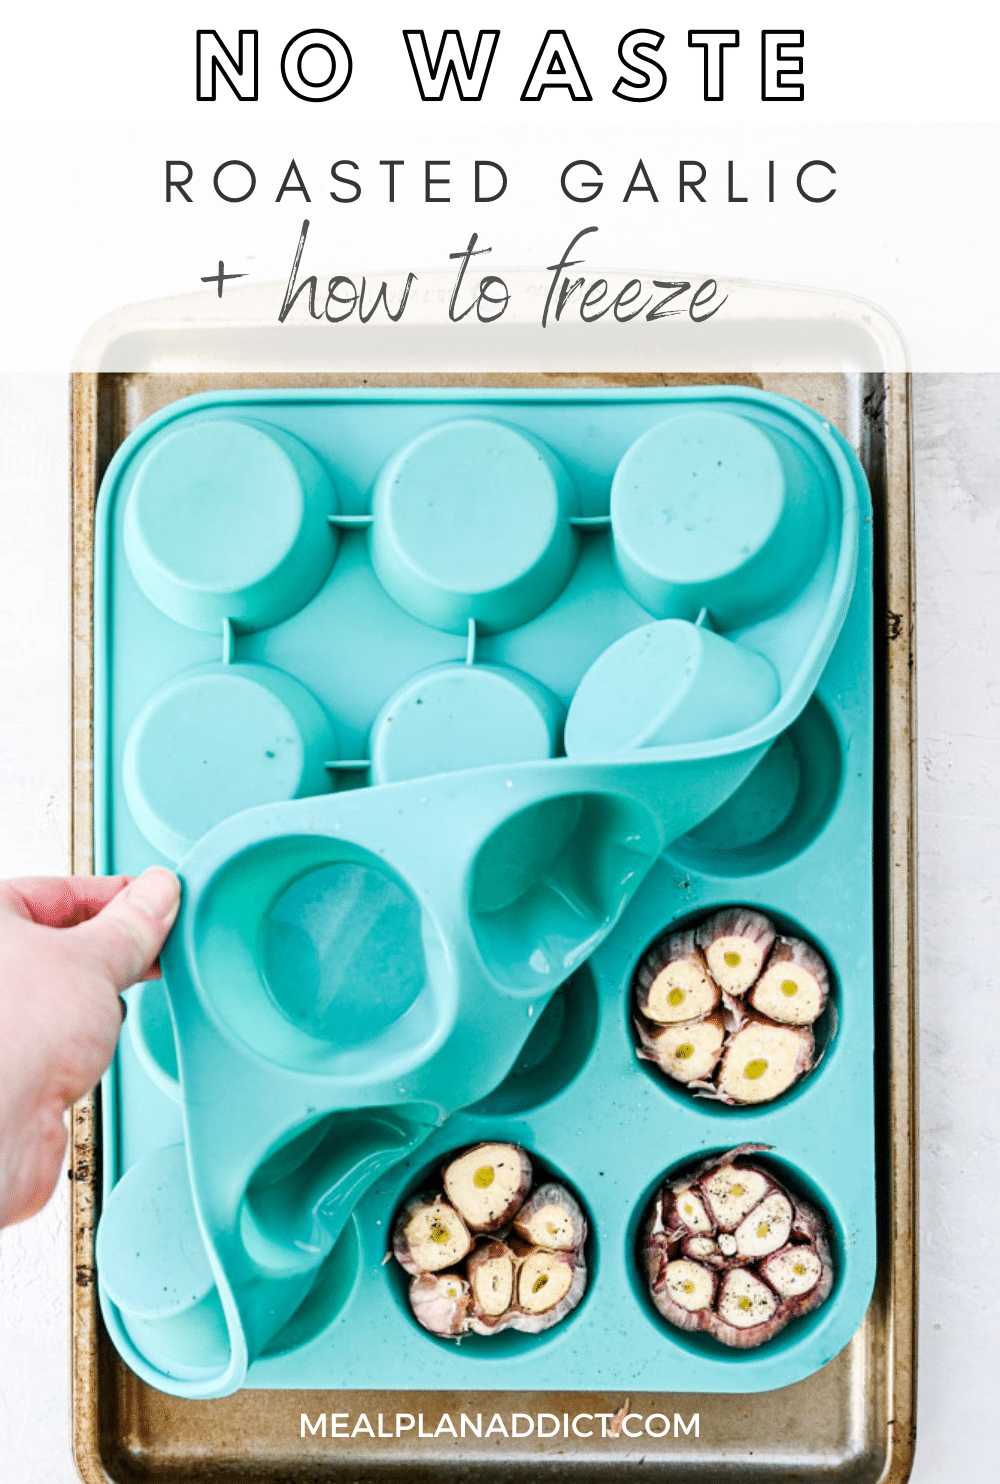 No waste roasted garlic plus how to freeze pin